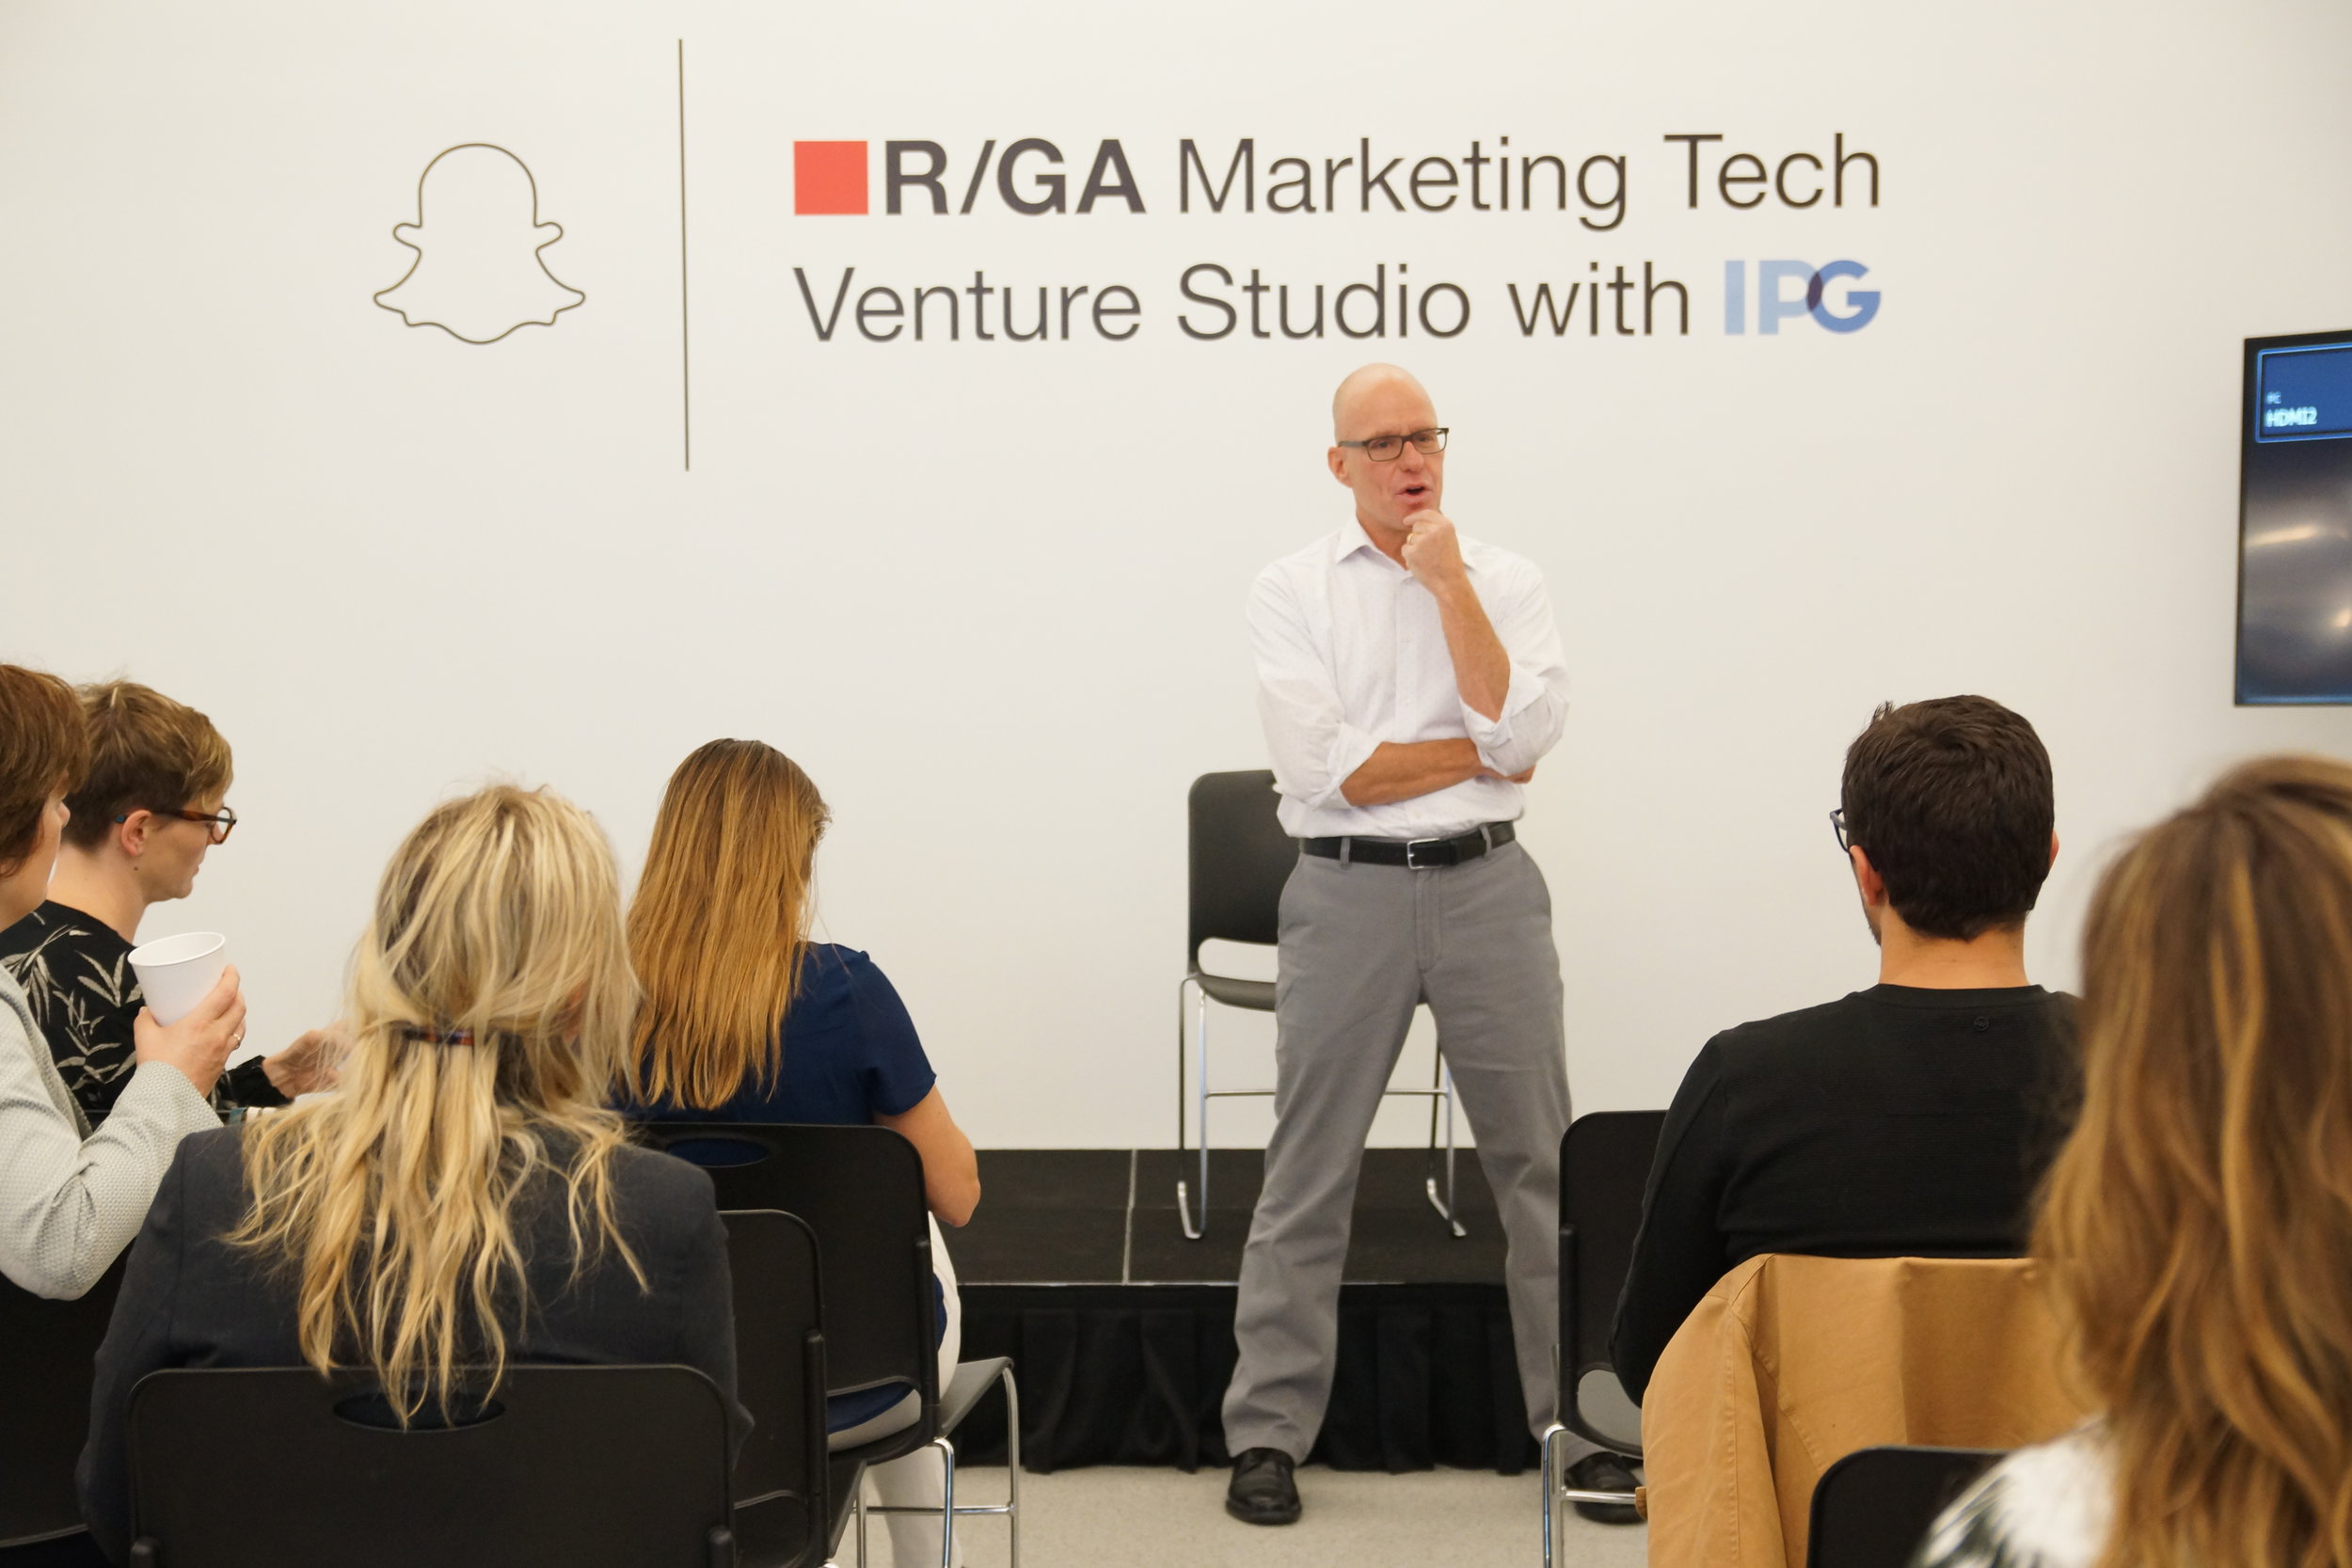 Visit to R/GA and their Marketing Tech Venture Studio